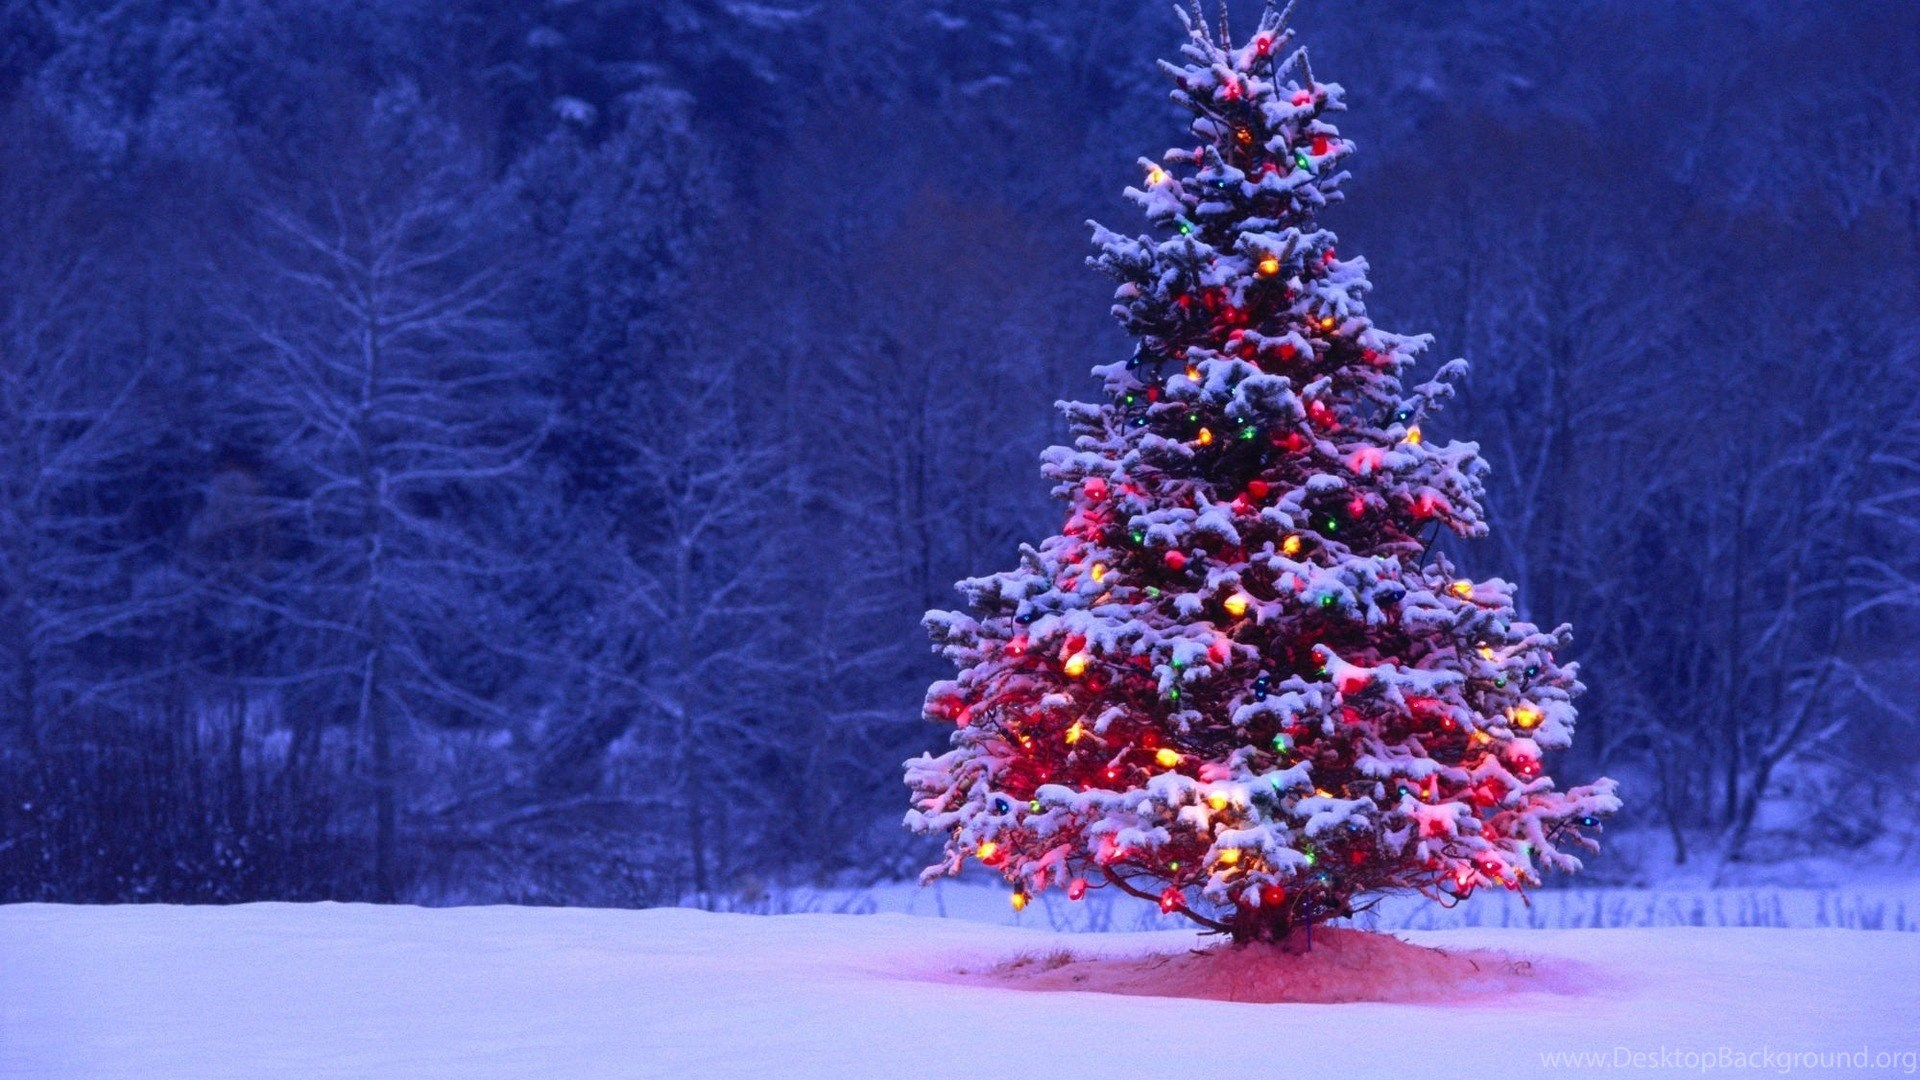 Pretty Christmas Candle Wallpapers Desktop Background